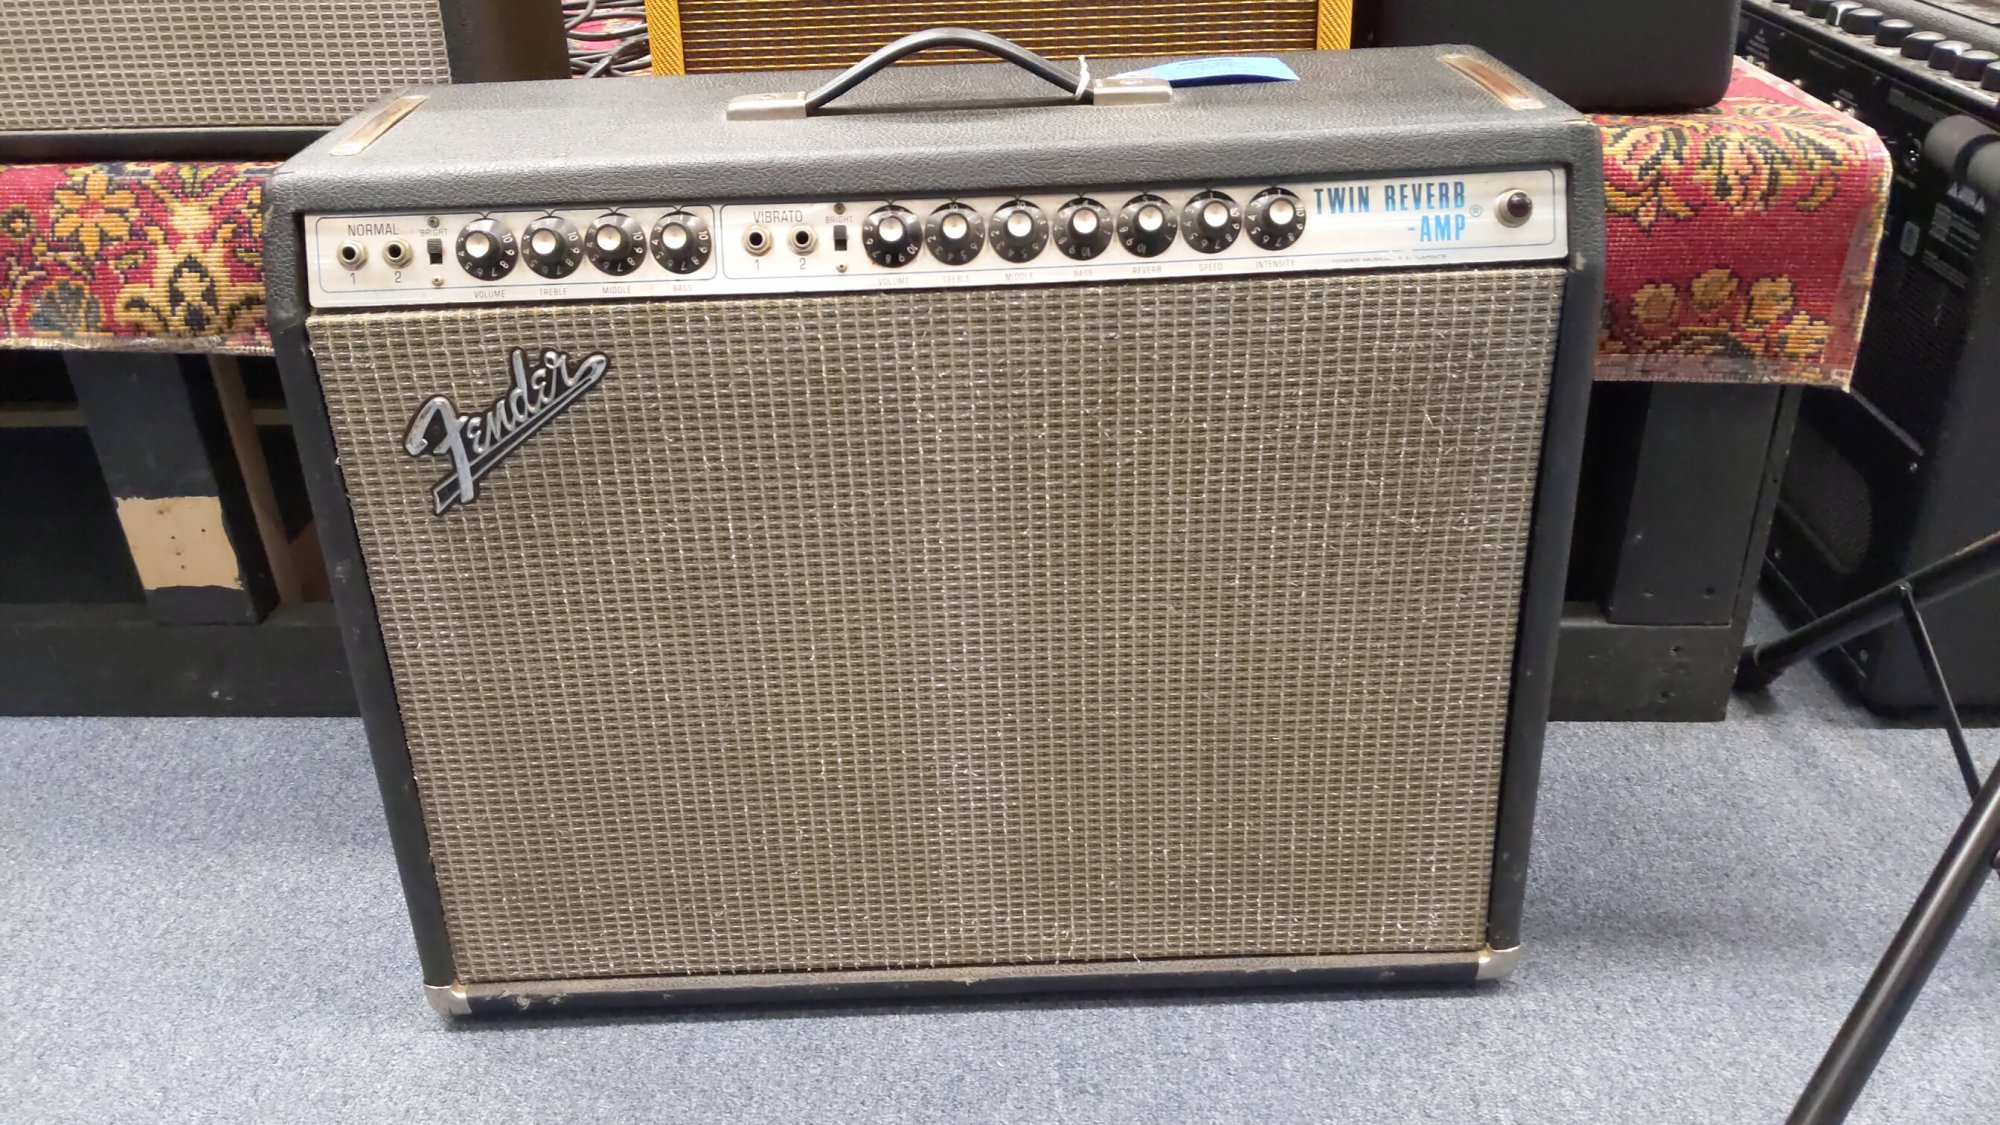 Used 1971 Twin Reverb Amplifier